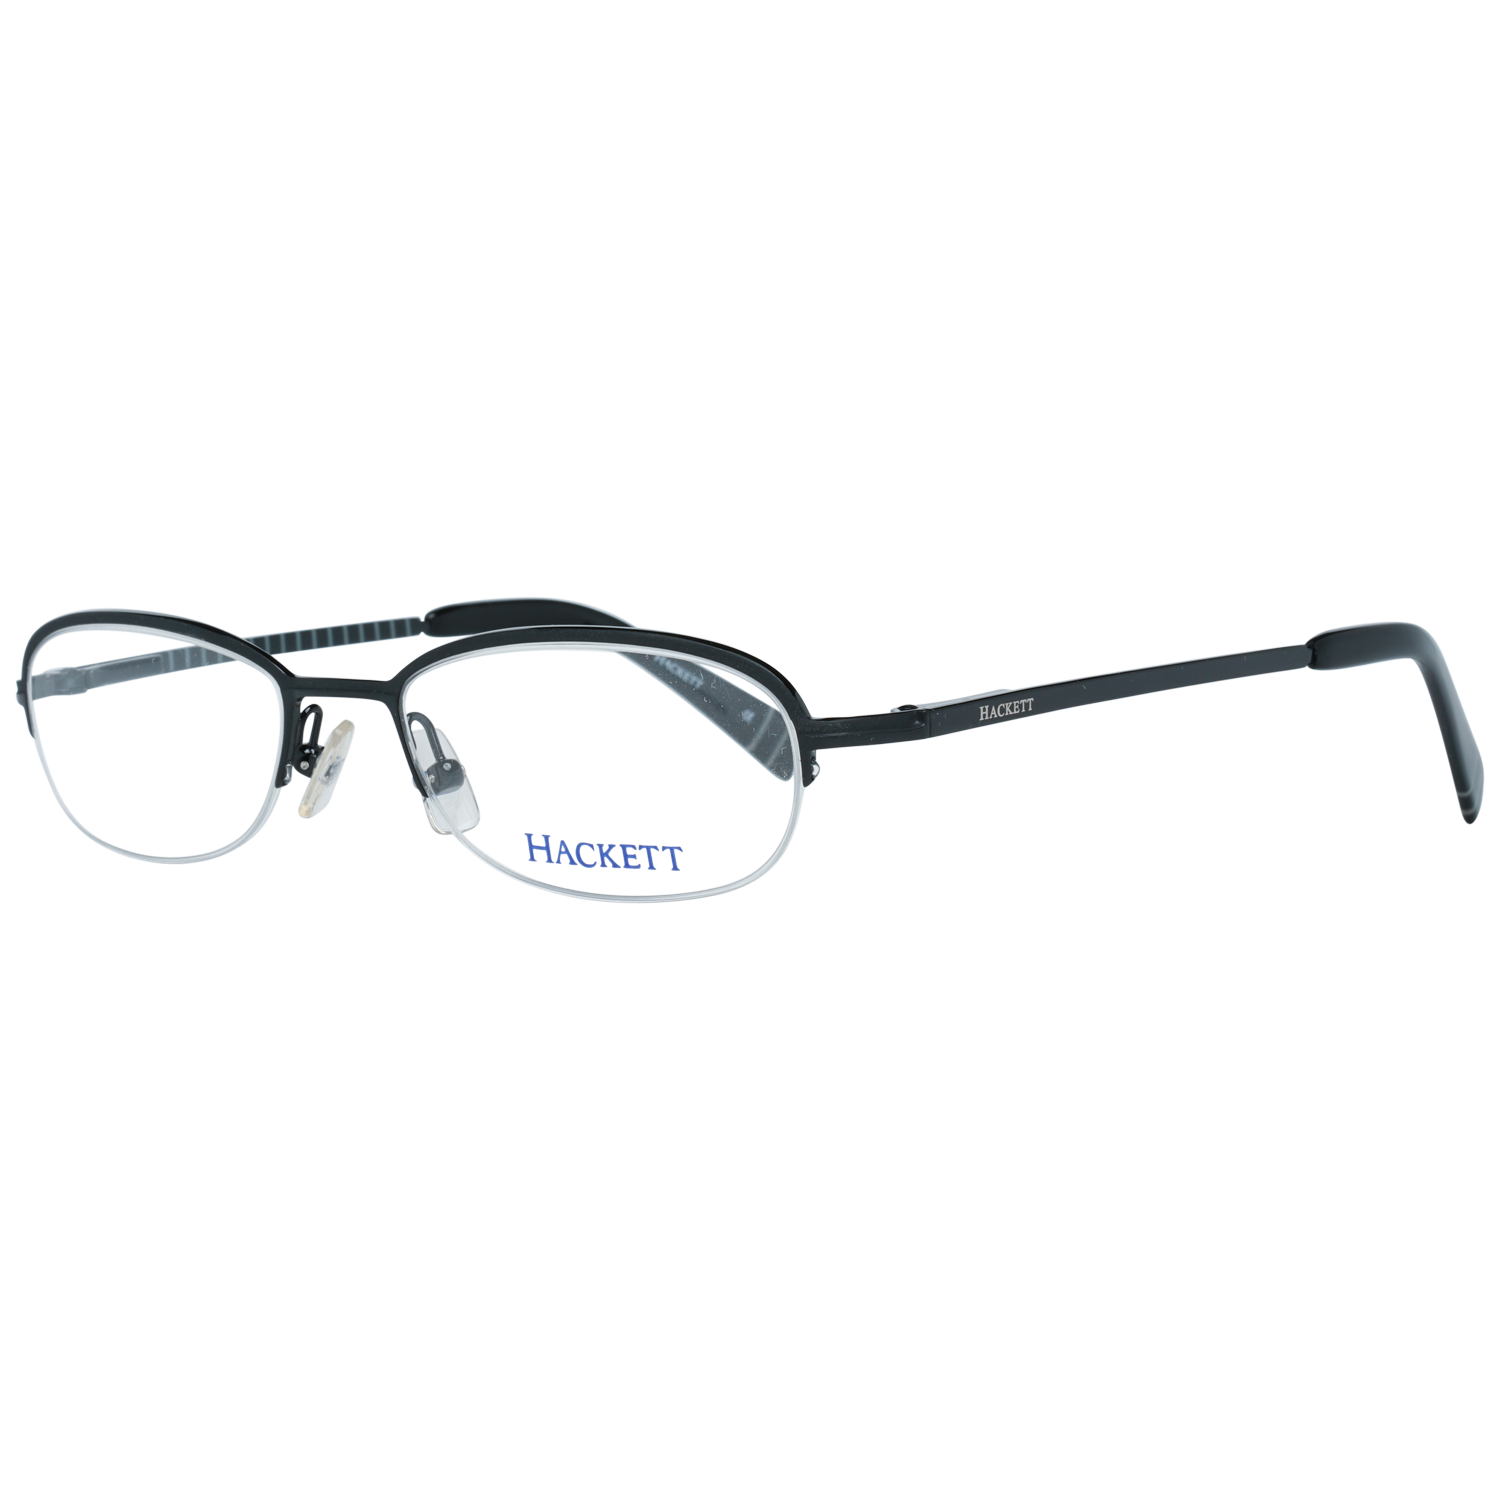 Hackett Optical Frame HEK1011 001 51 Black